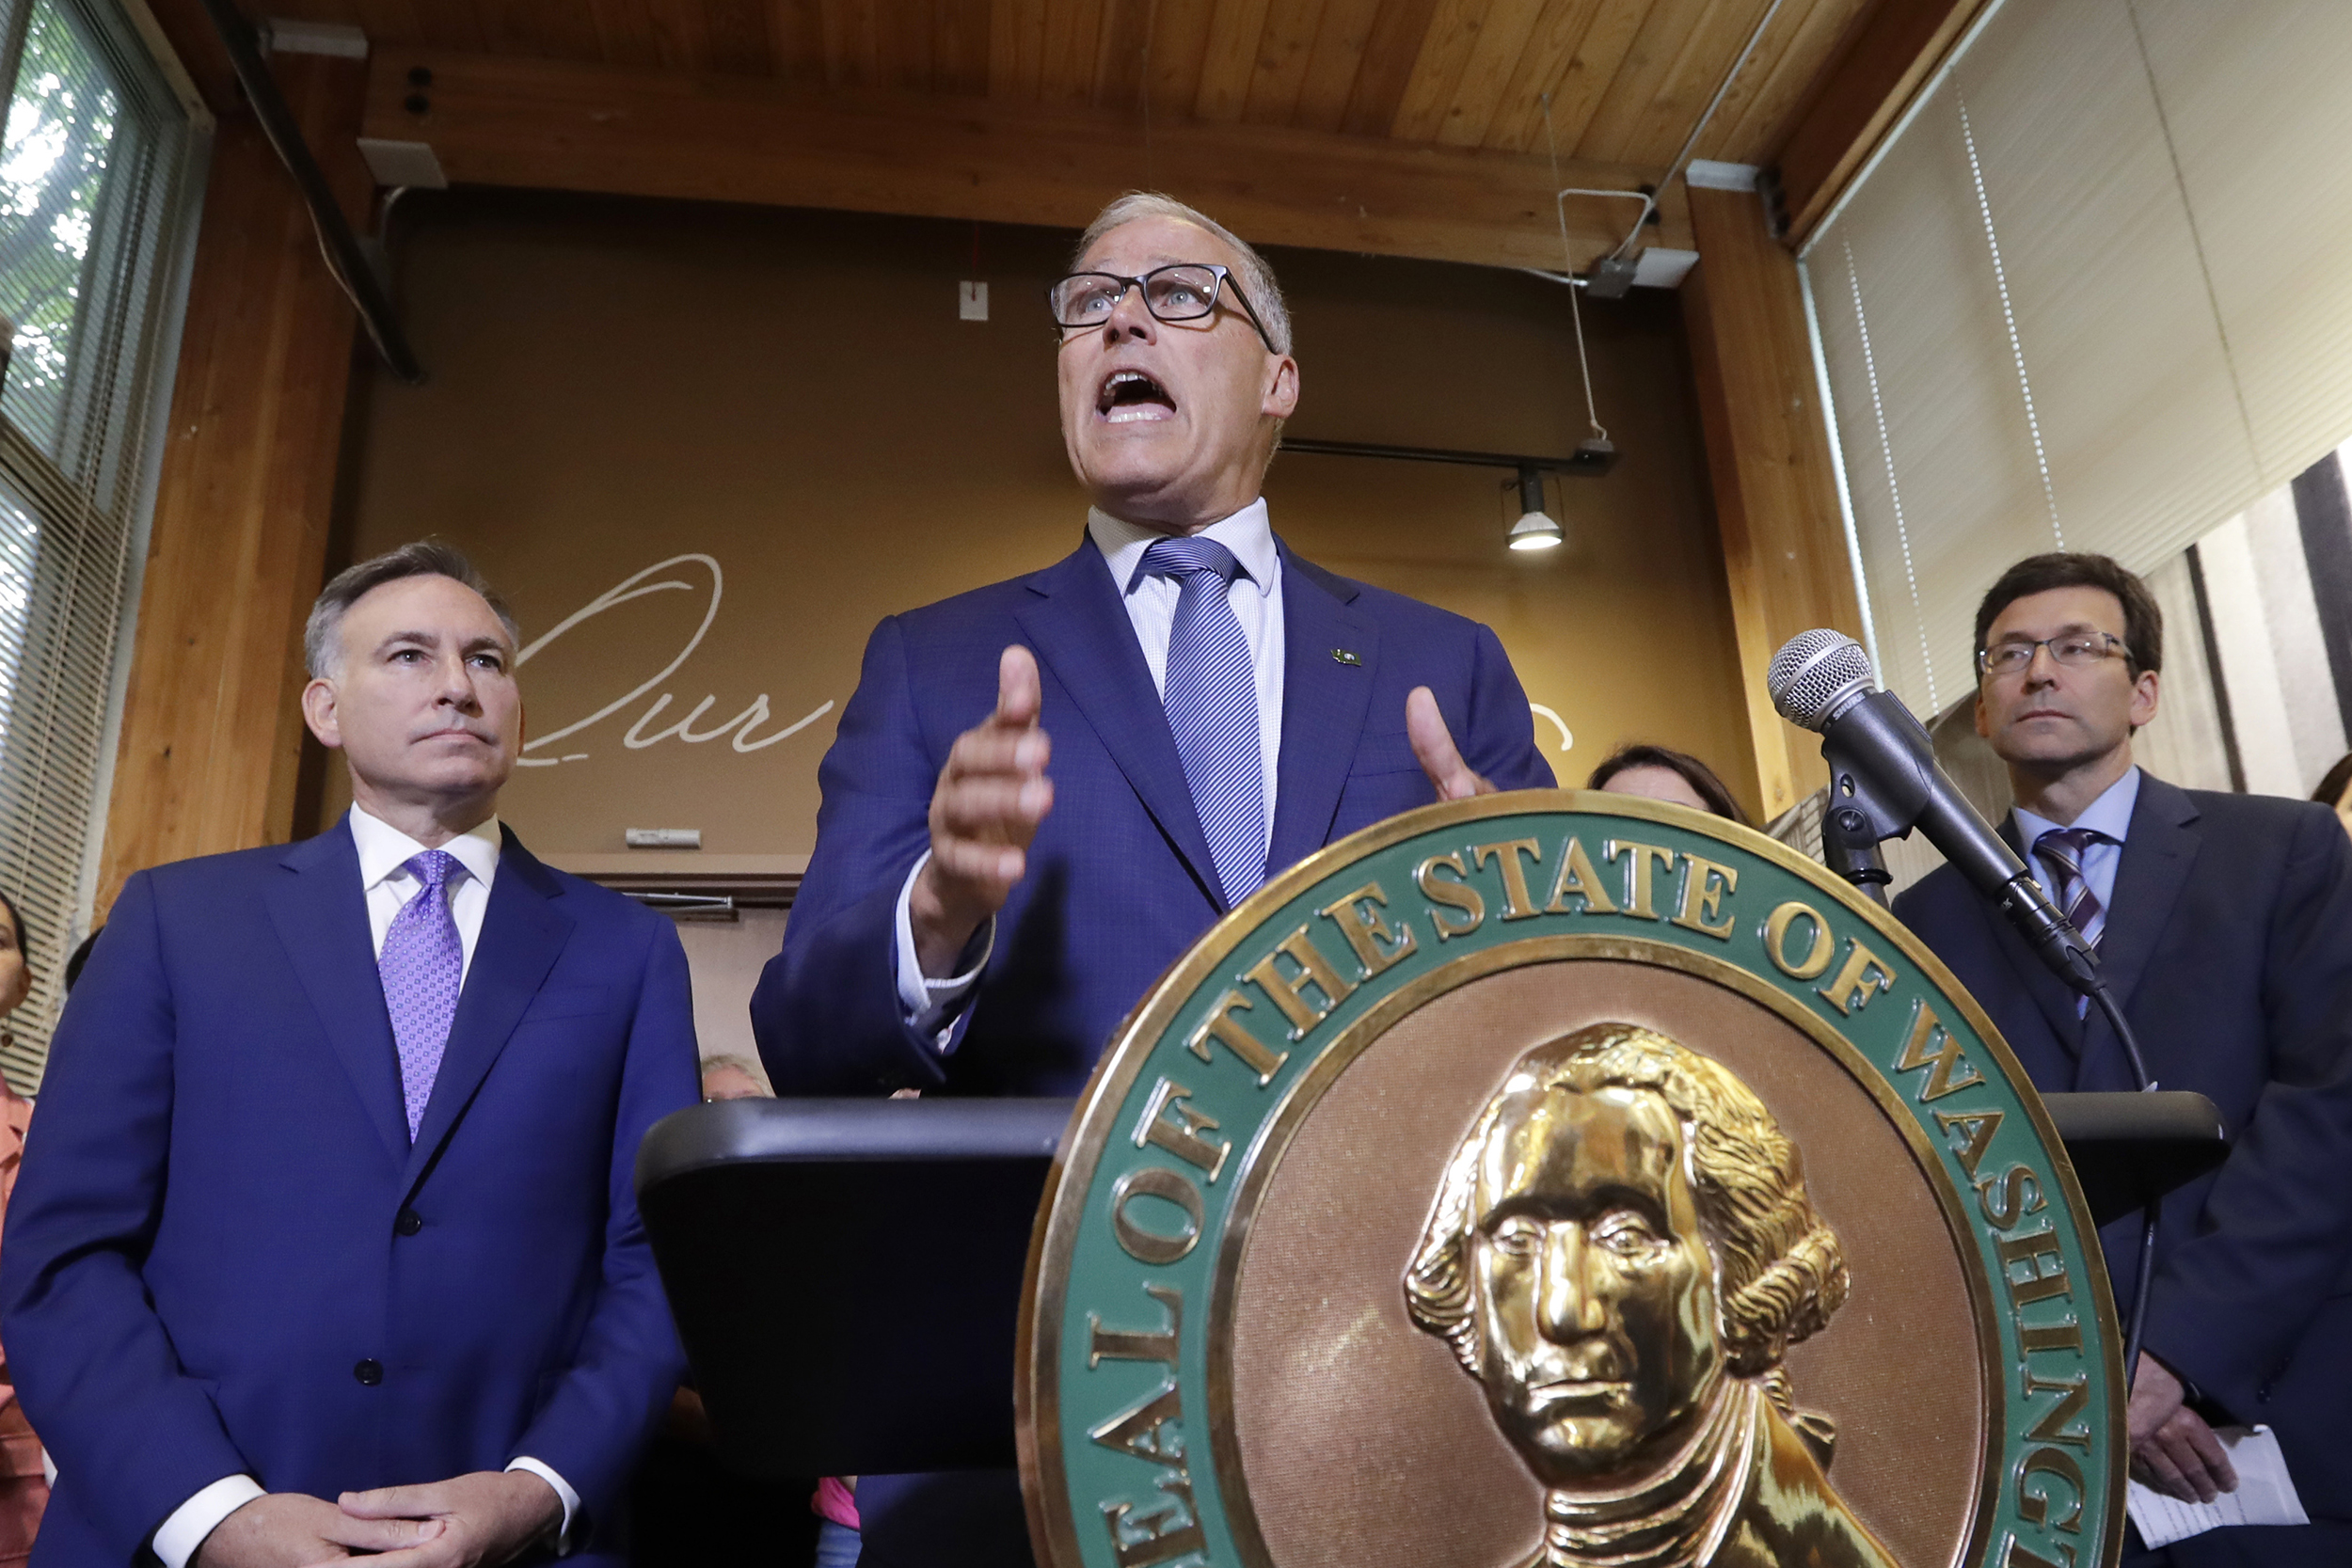 Governor Jay Inslee speaks at a conference